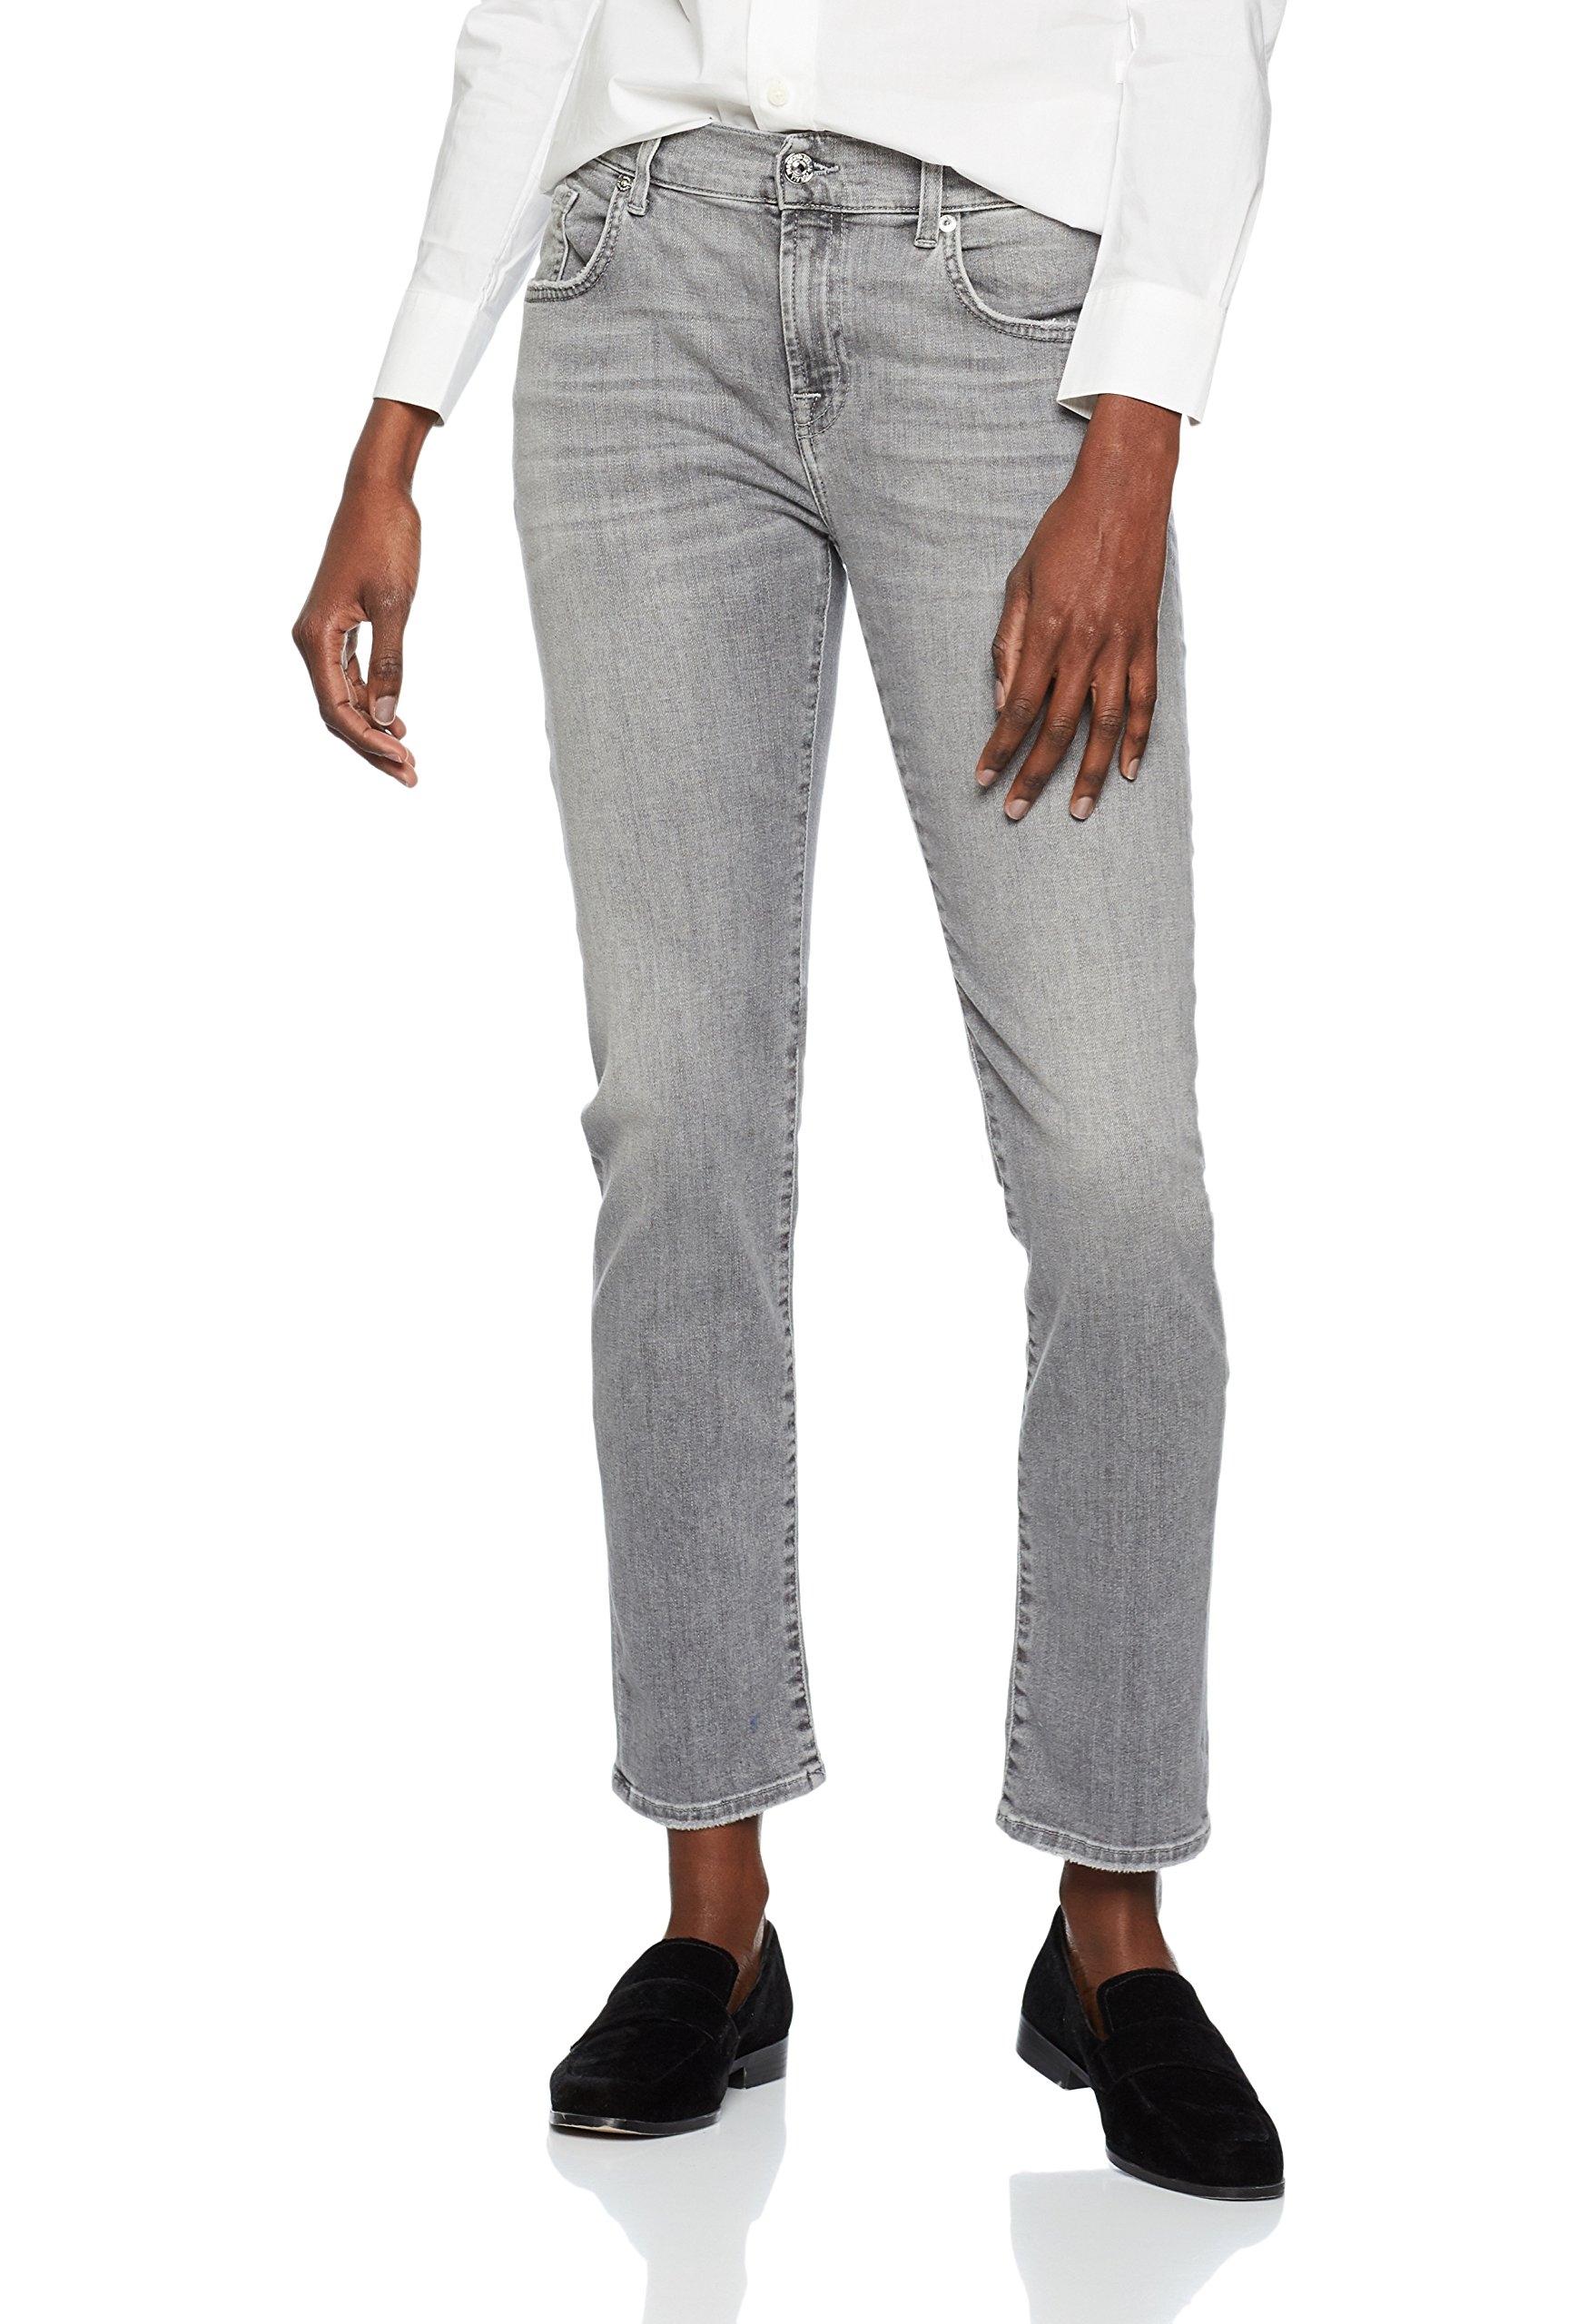 Mankind International Seven For Fabricant27Femme Sagl 0woW27 Jean Skinny All l27taille Relaxed BoyfriendGrisdawn kn8w0ONPXZ